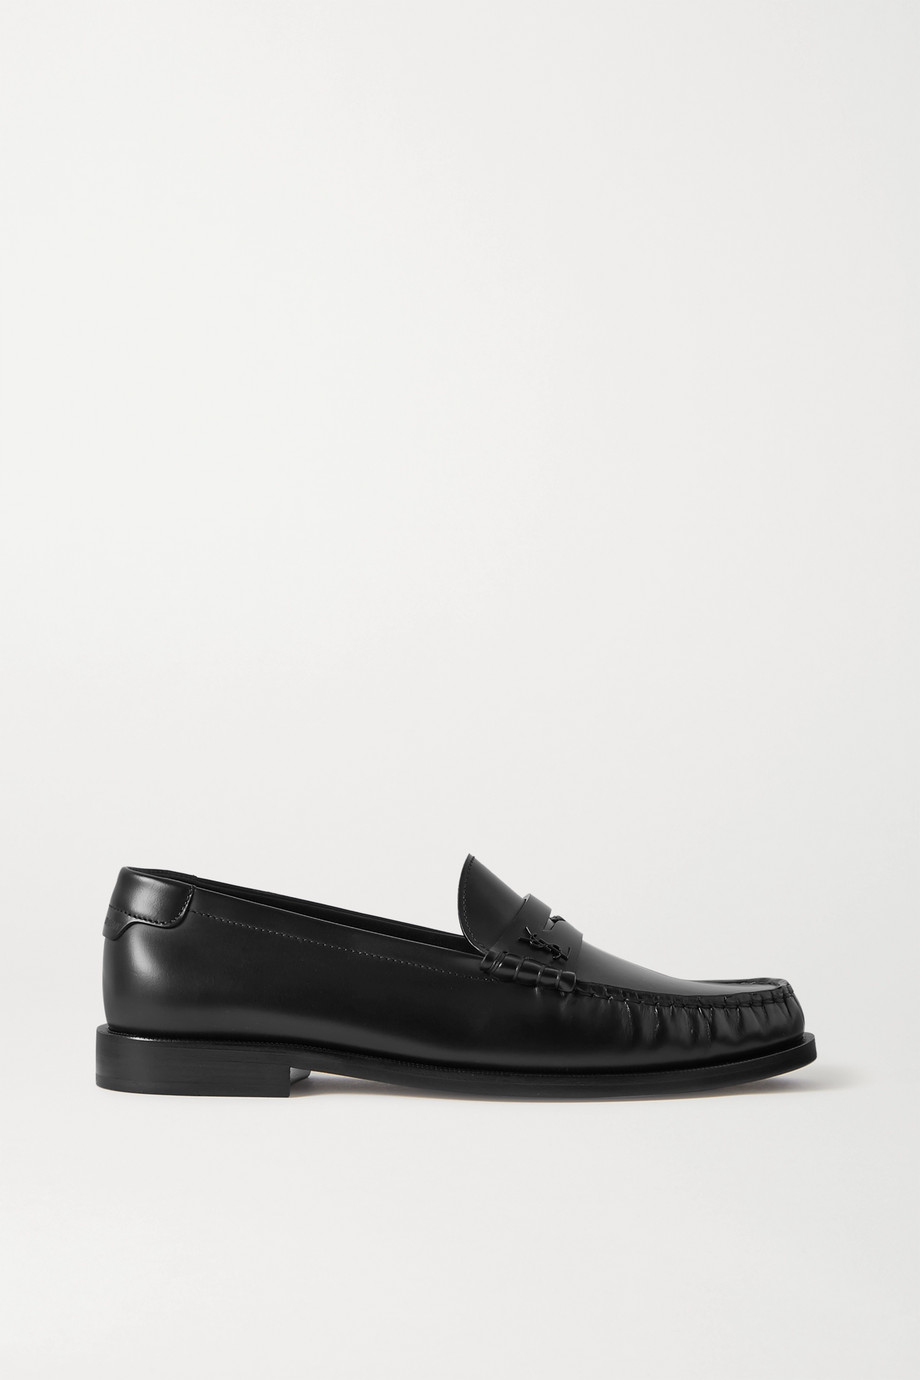 SAINT LAURENT Loafers aus Leder mit Logoapplikation